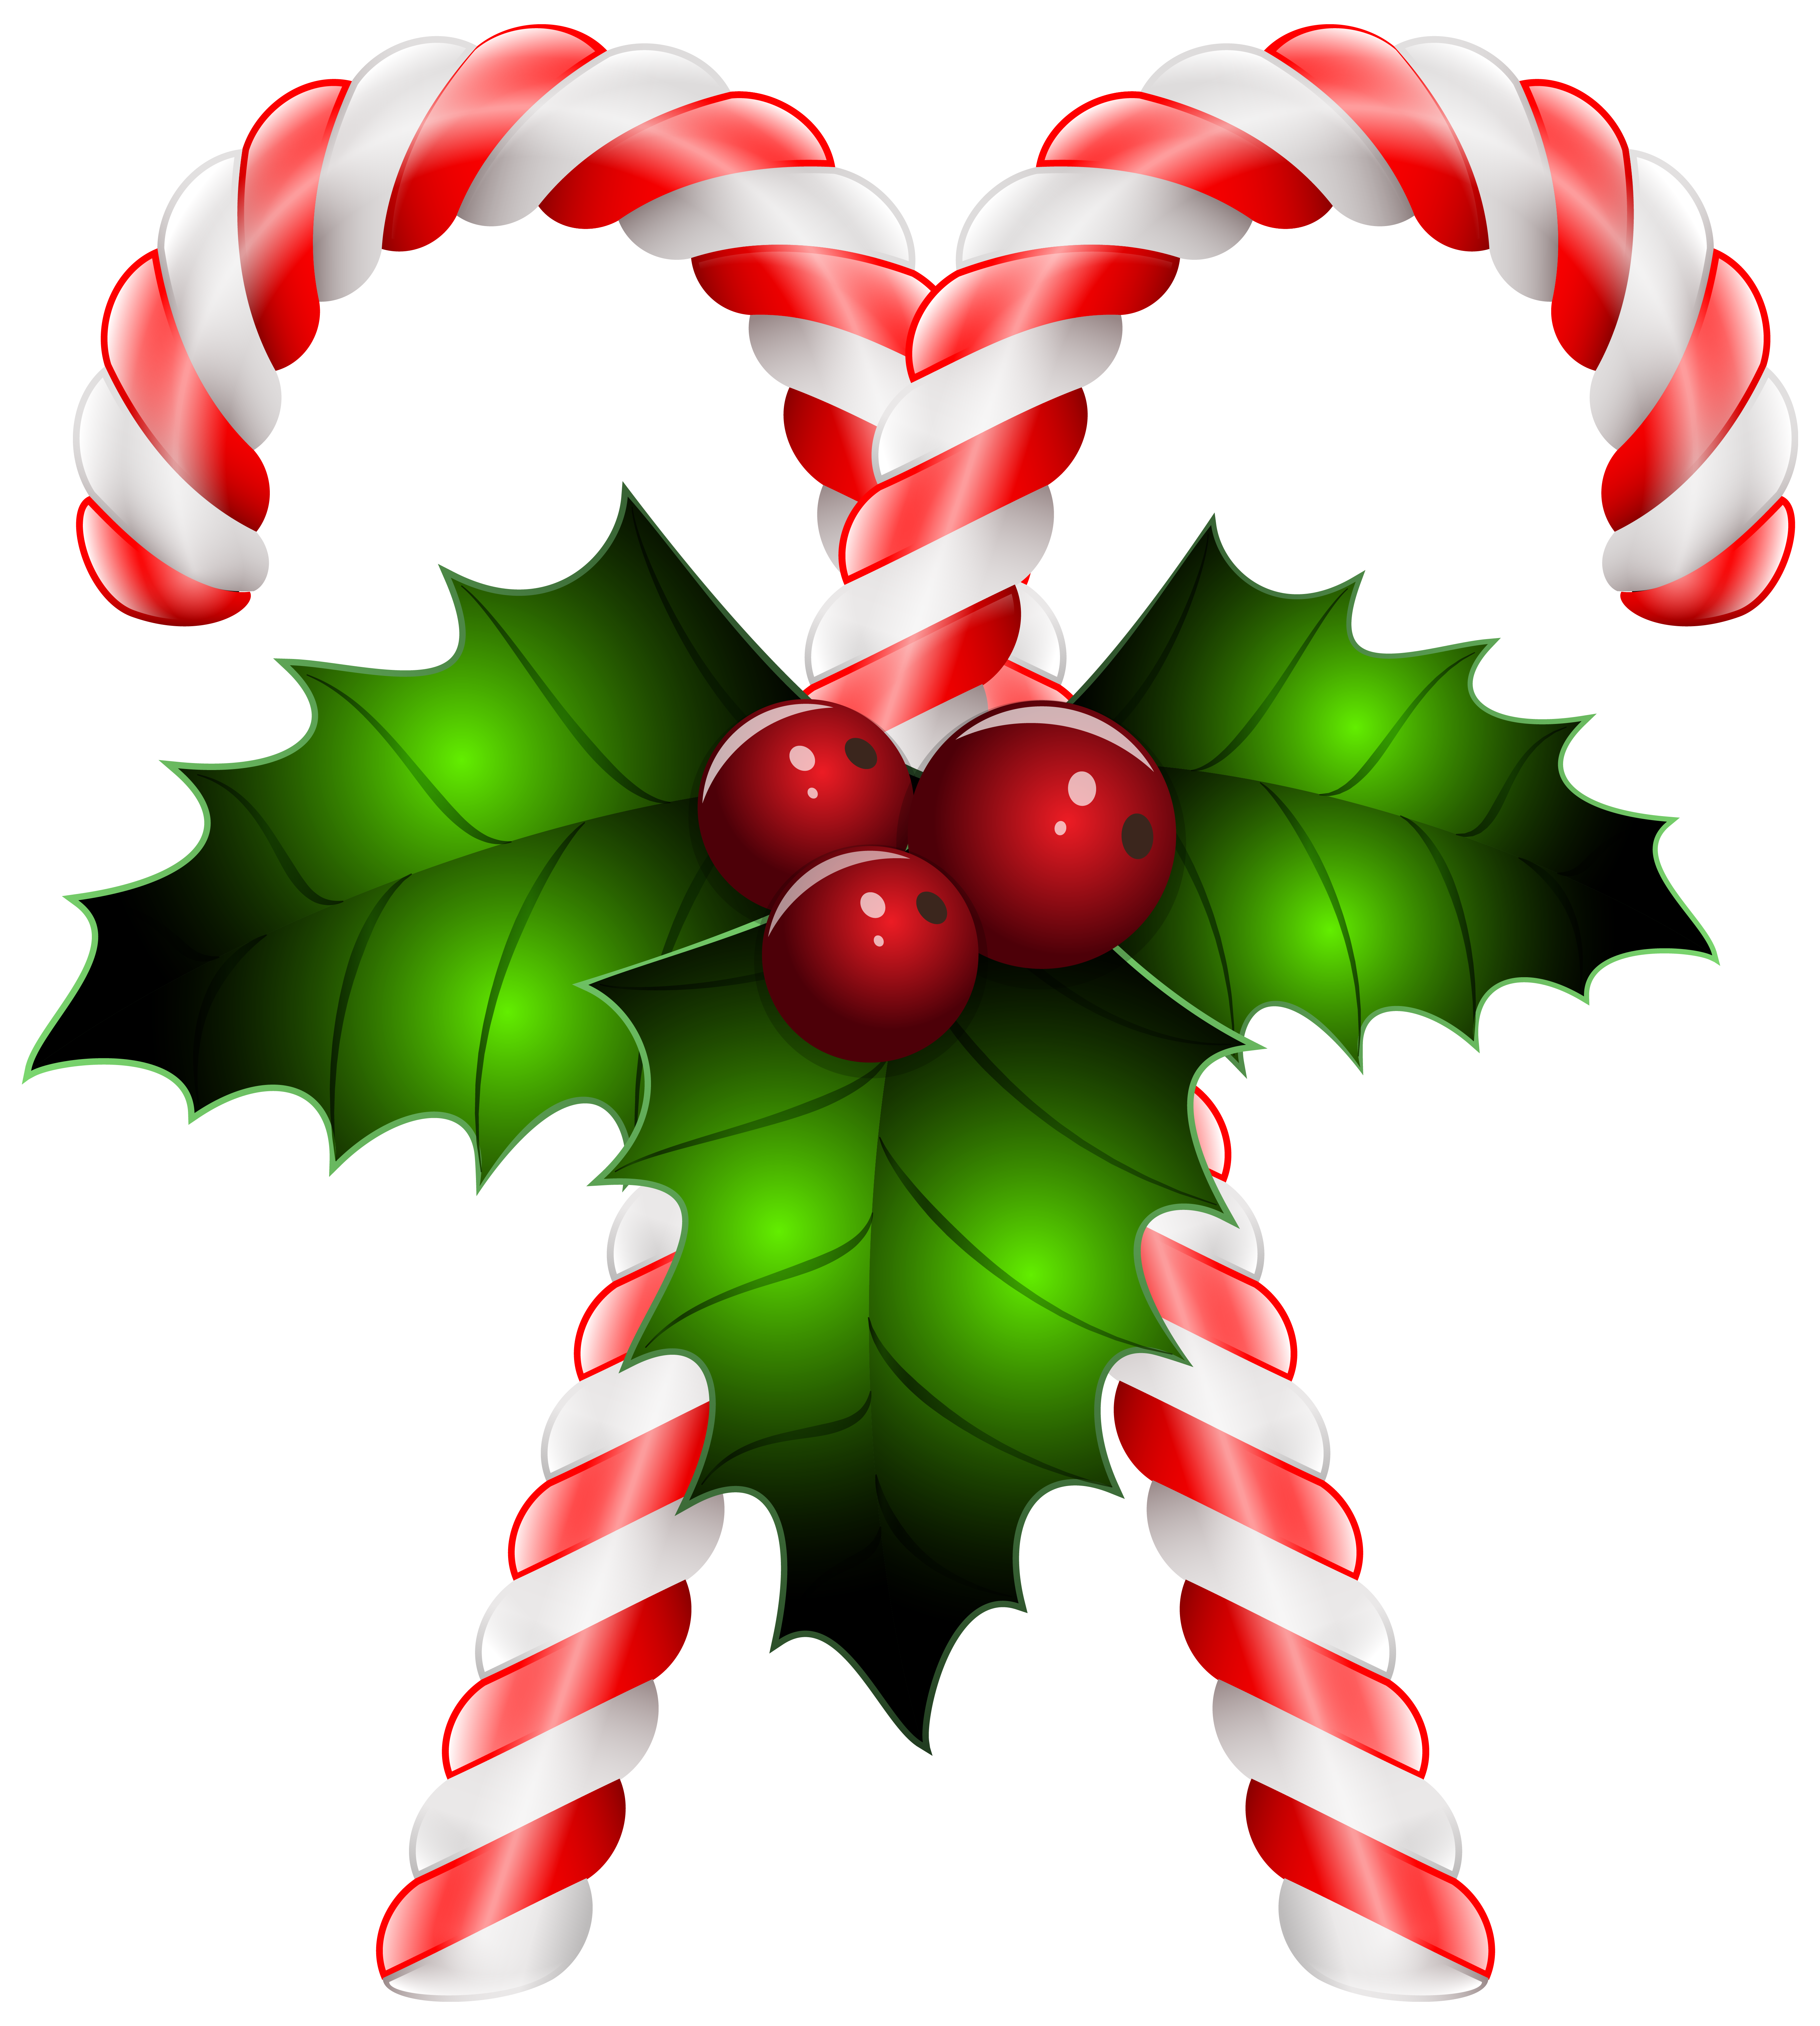 Candy Canes with Holly Transparent PNG Clip Art Image